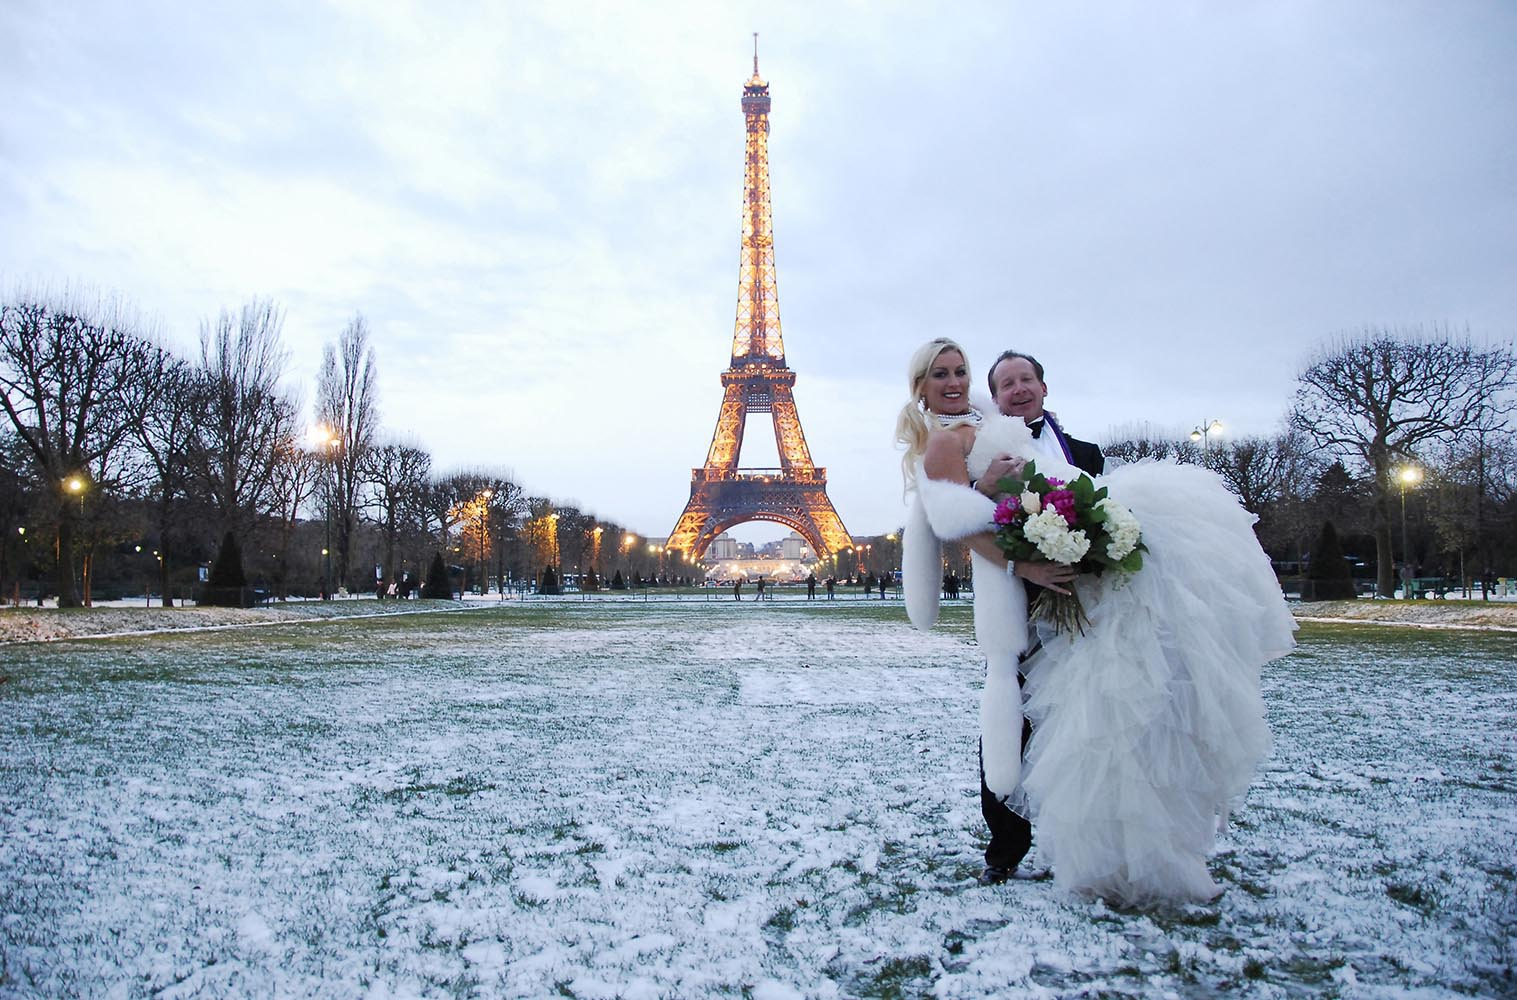 Couple de maries, Champ de Mars sous la neige, Paris